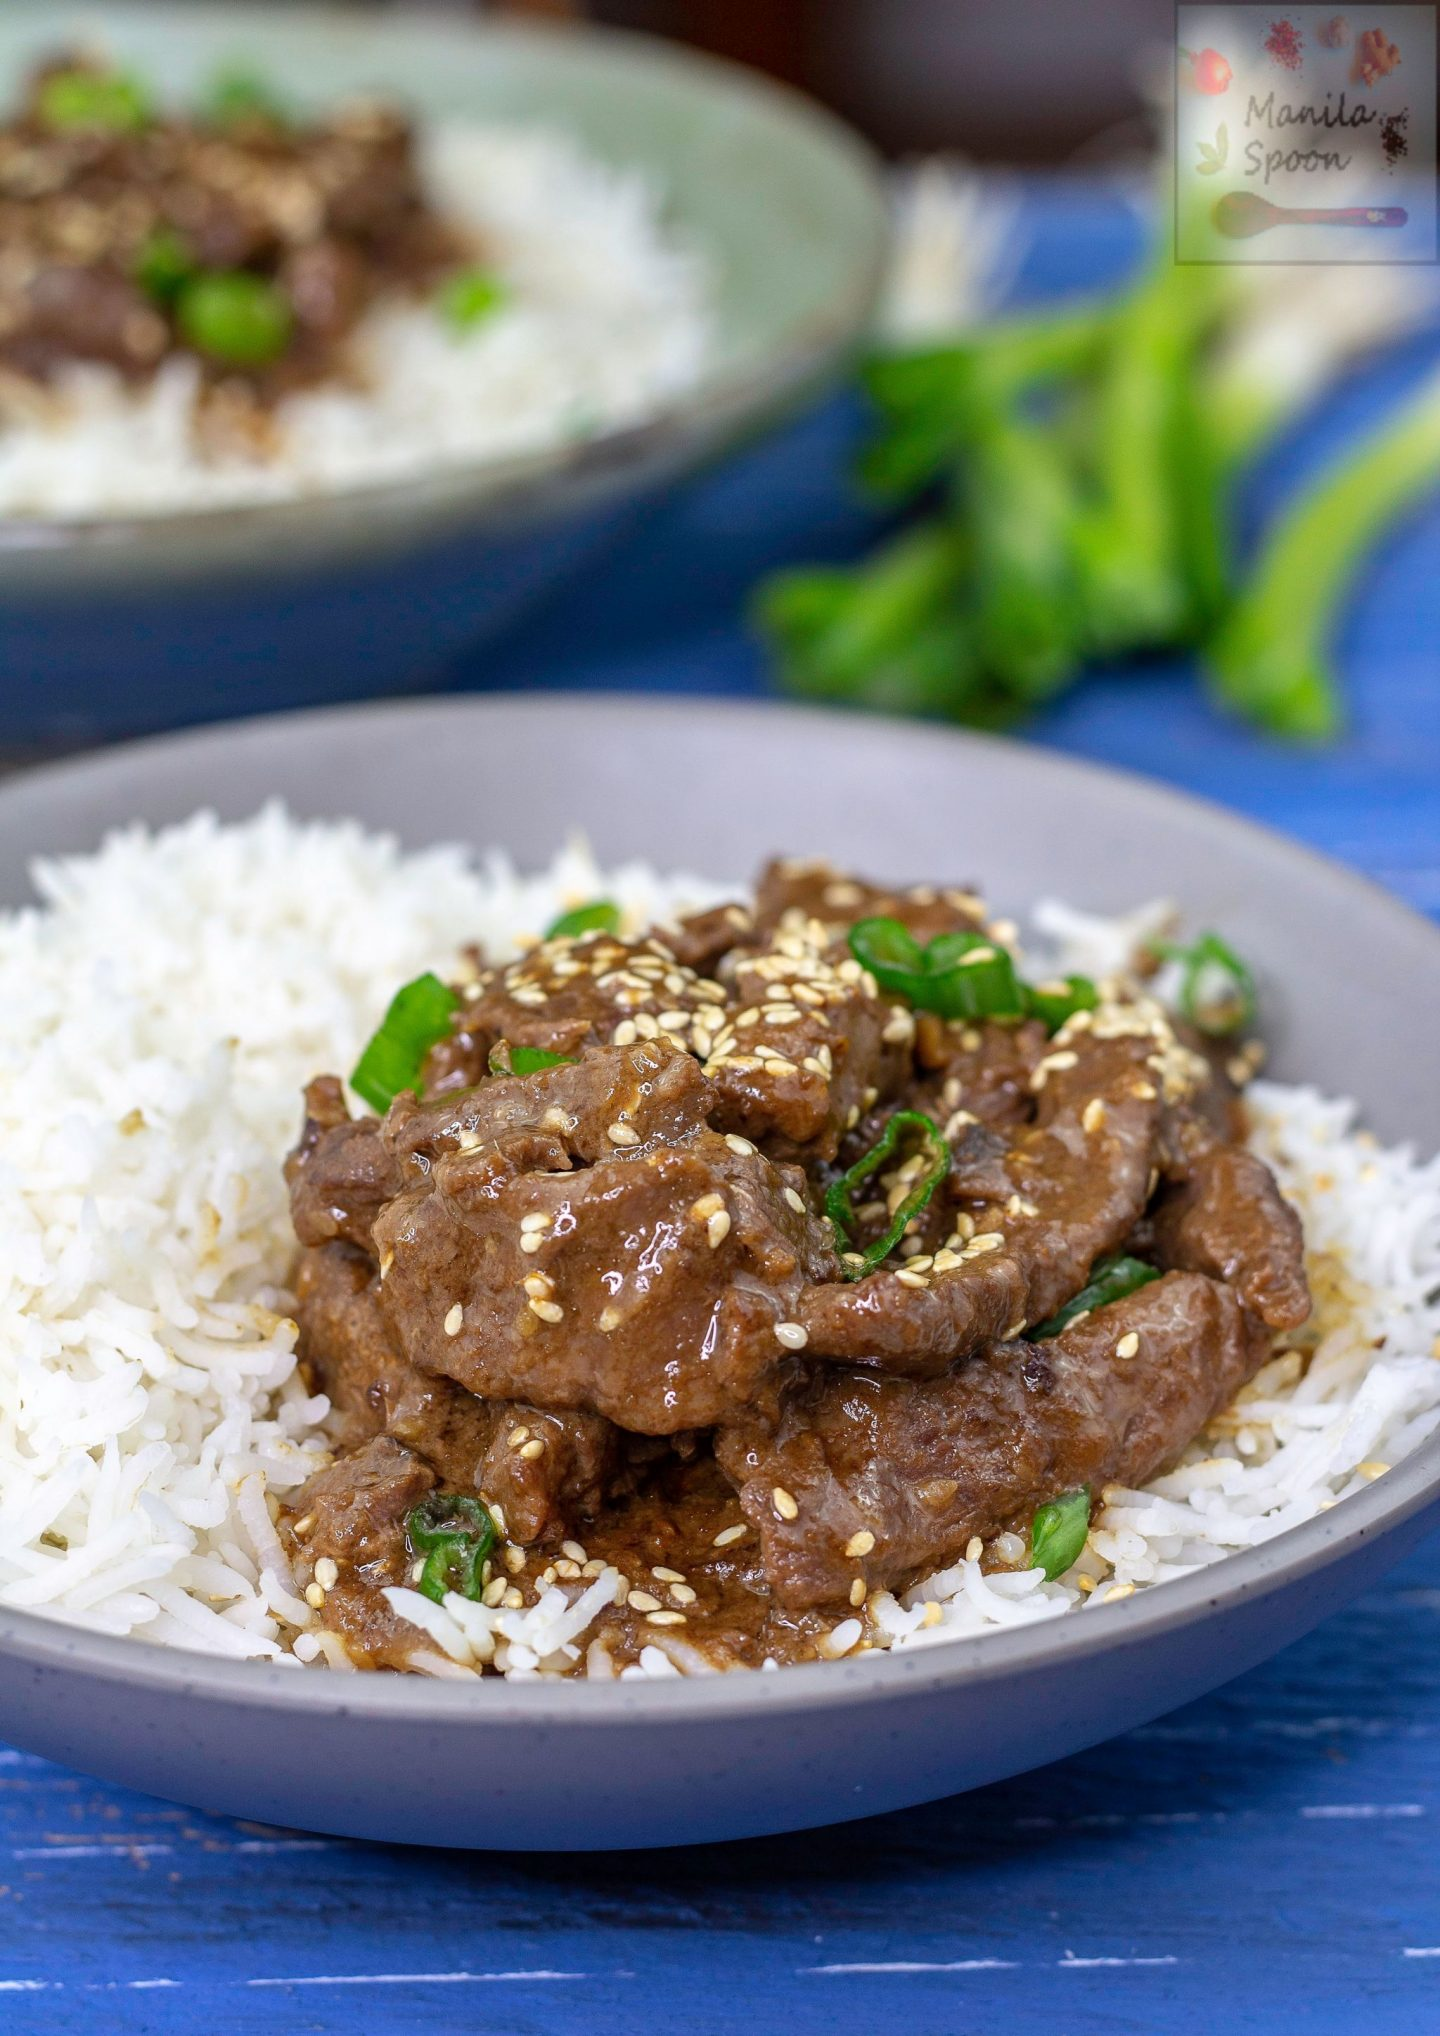 These Korean-style beef strips are melt-in-your-mouth tender and super tasty. The delicious marinade with garlic, ginger, soy sauce and sesame oil totally permeates the beef and gives it so much flavor. Plus, it's cooked in the instant pot so it's a breeze to make. #koreanbeef #sesame #garlic #beef #asianfood #delicious